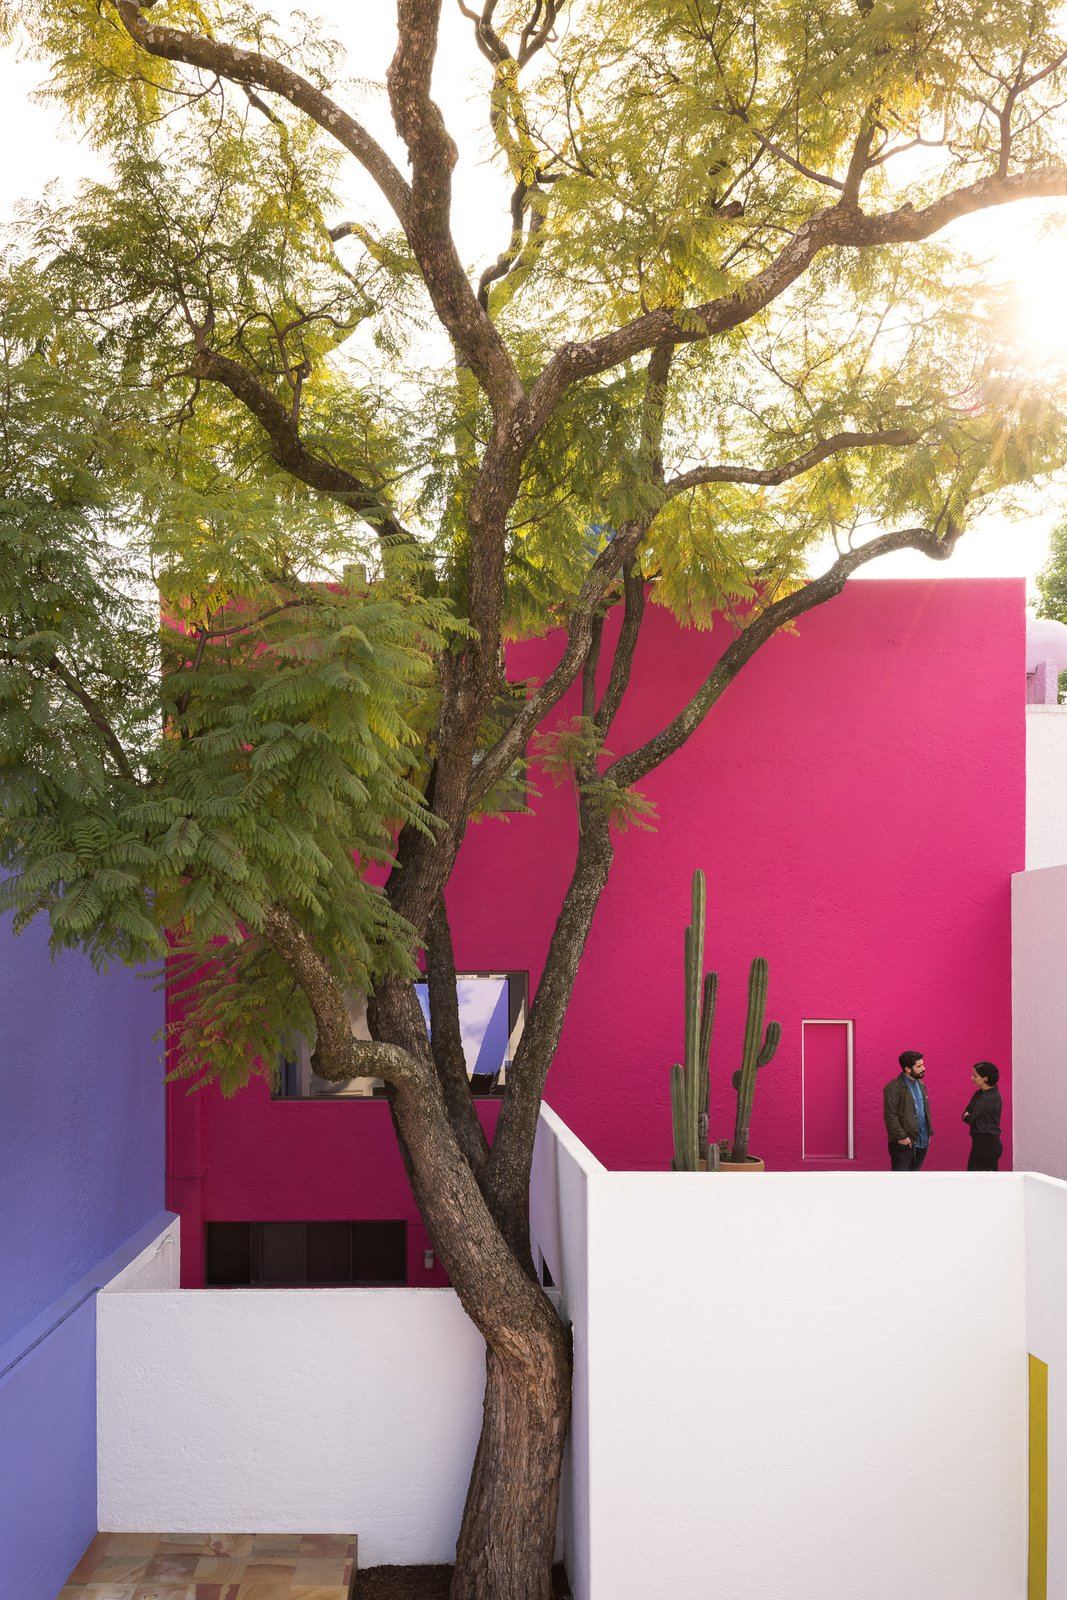 Casa Gilardi courtyard with jacaranda tree